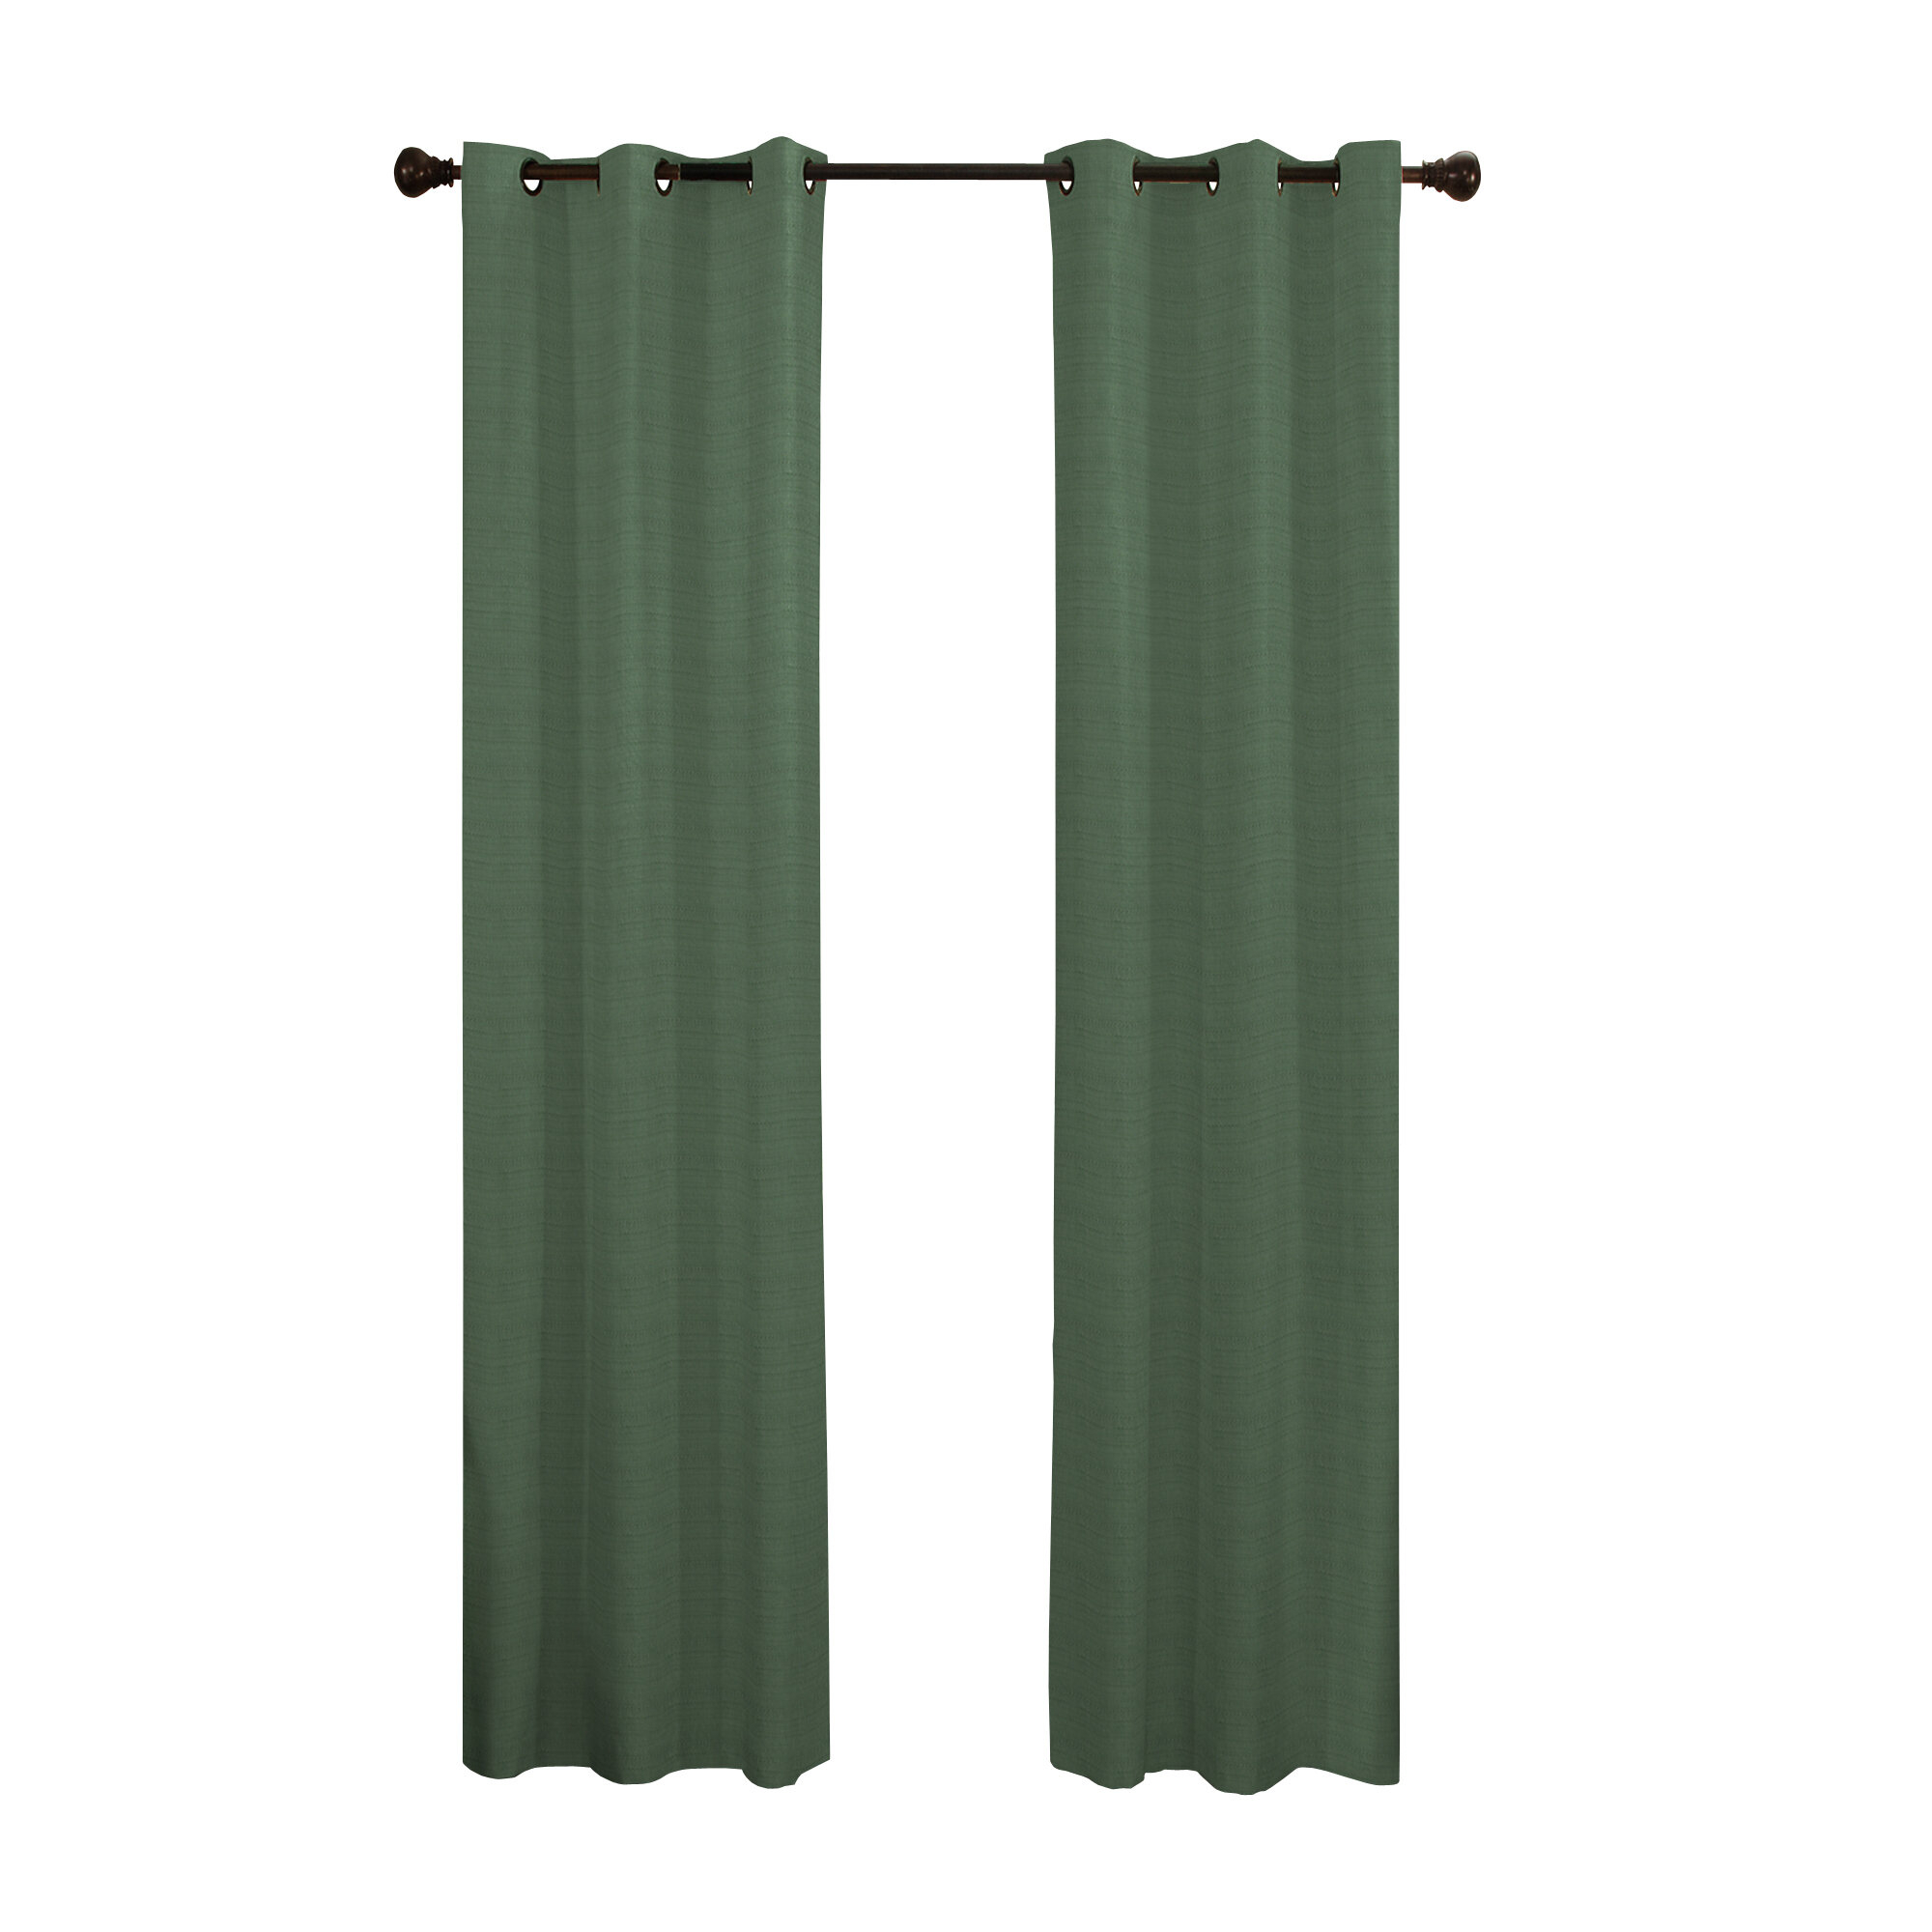 Andover Solid Blackout Thermal Grommet Single Curtain Panel Pertaining To Solid Cotton True Blackout Curtain Panels (View 15 of 30)